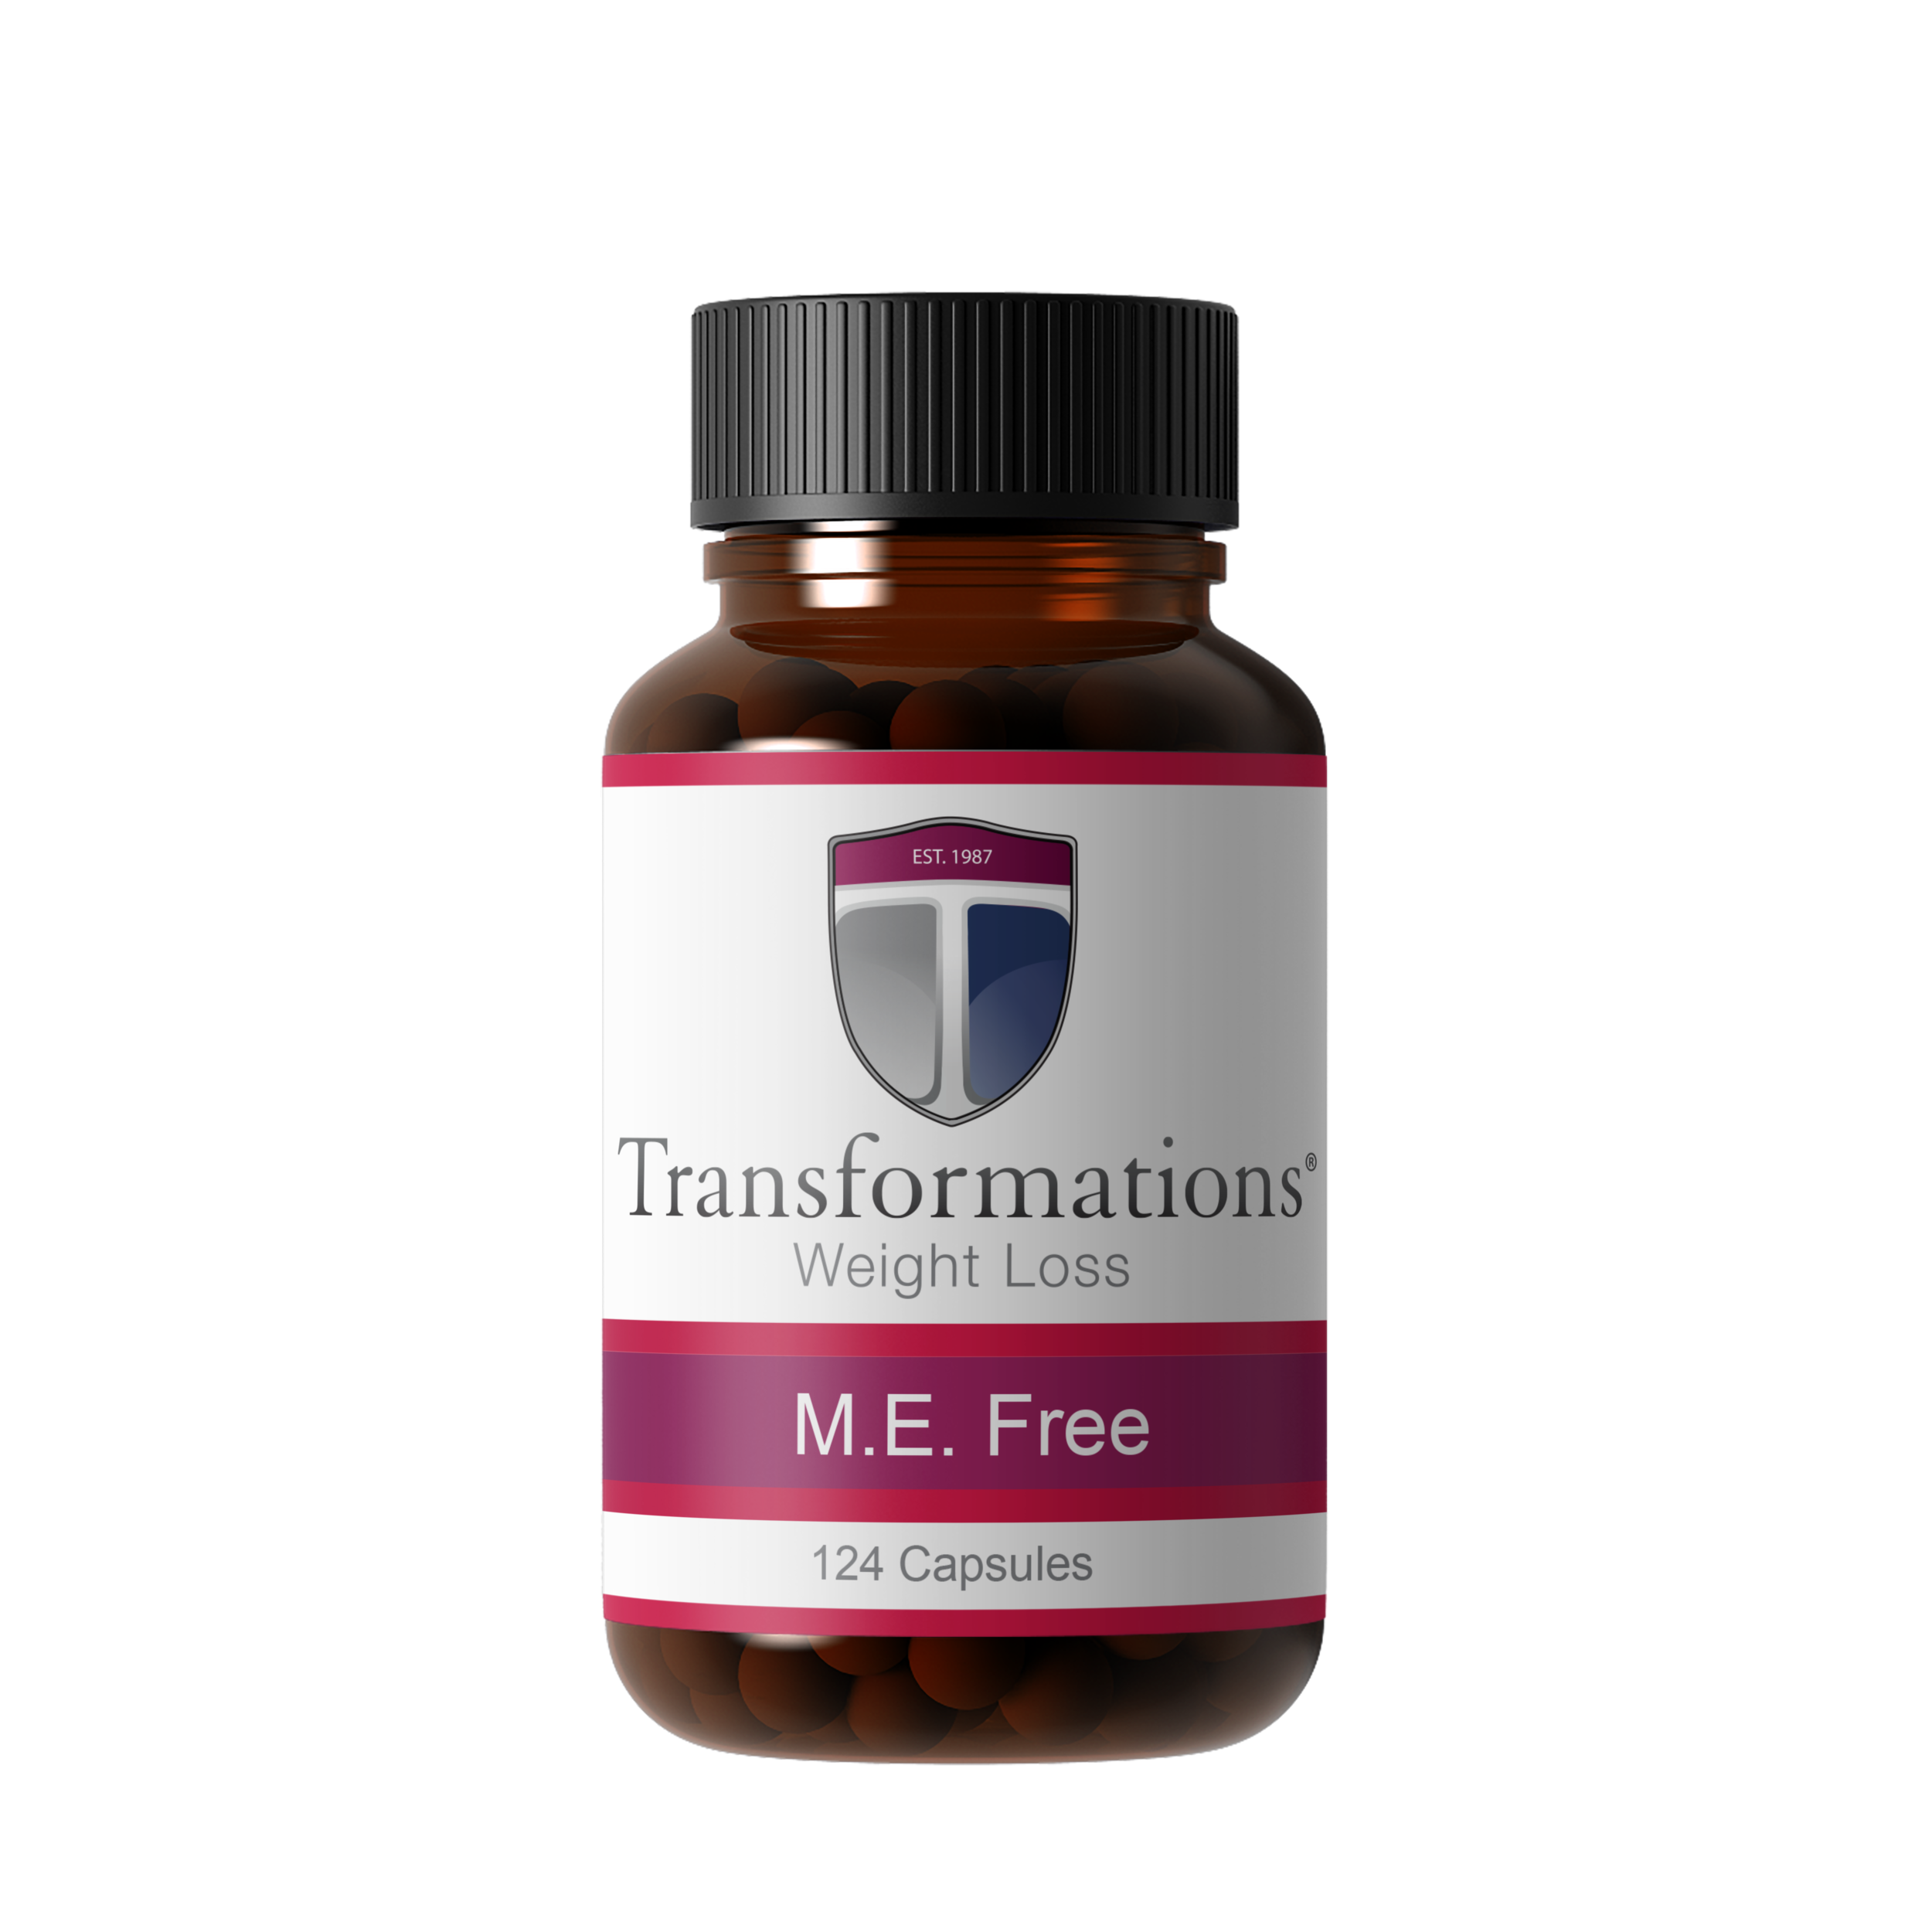 Transformations Medical Weight Loss Metabolic Enhancer Free